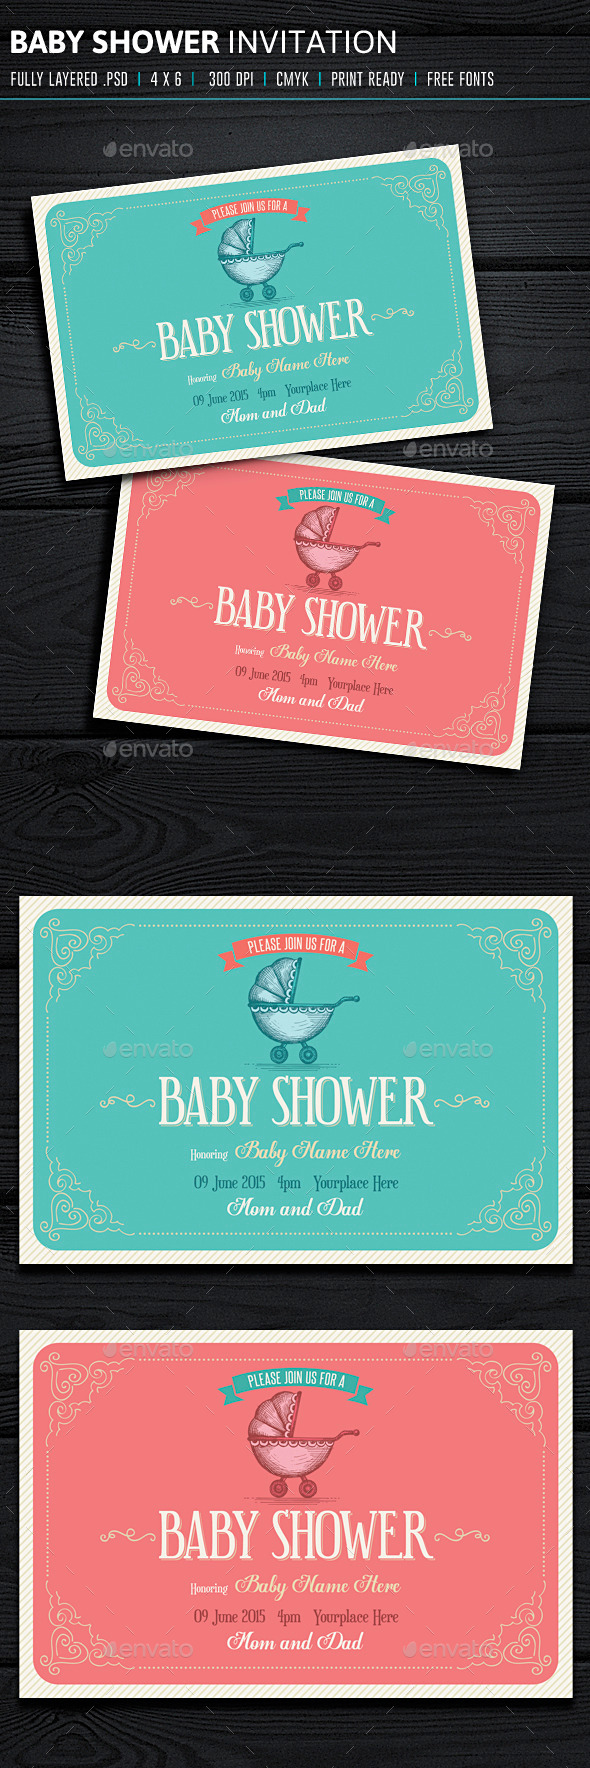 GraphicRiver Baby Shower Invitation 10146076